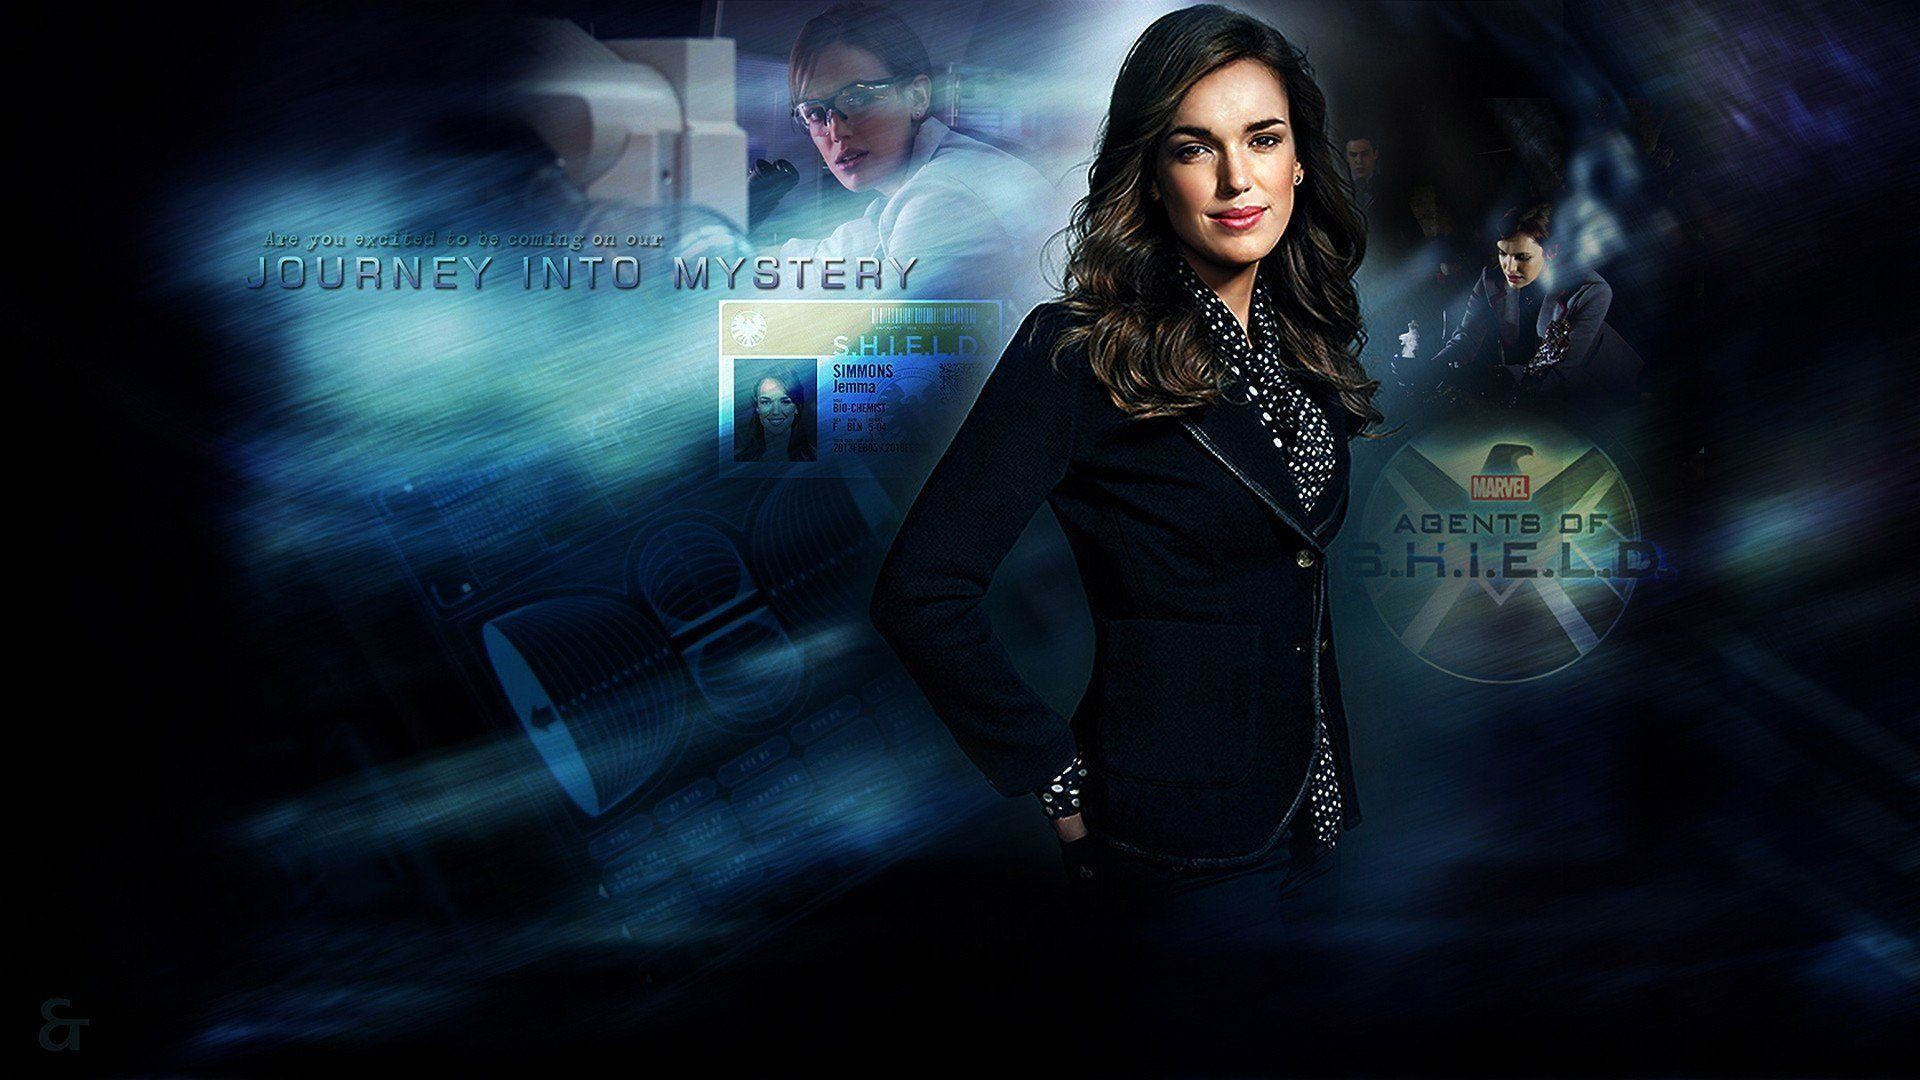 1920x1080 Agents of S.H.I.E.L.D wallpapers HD free Download for Desktop